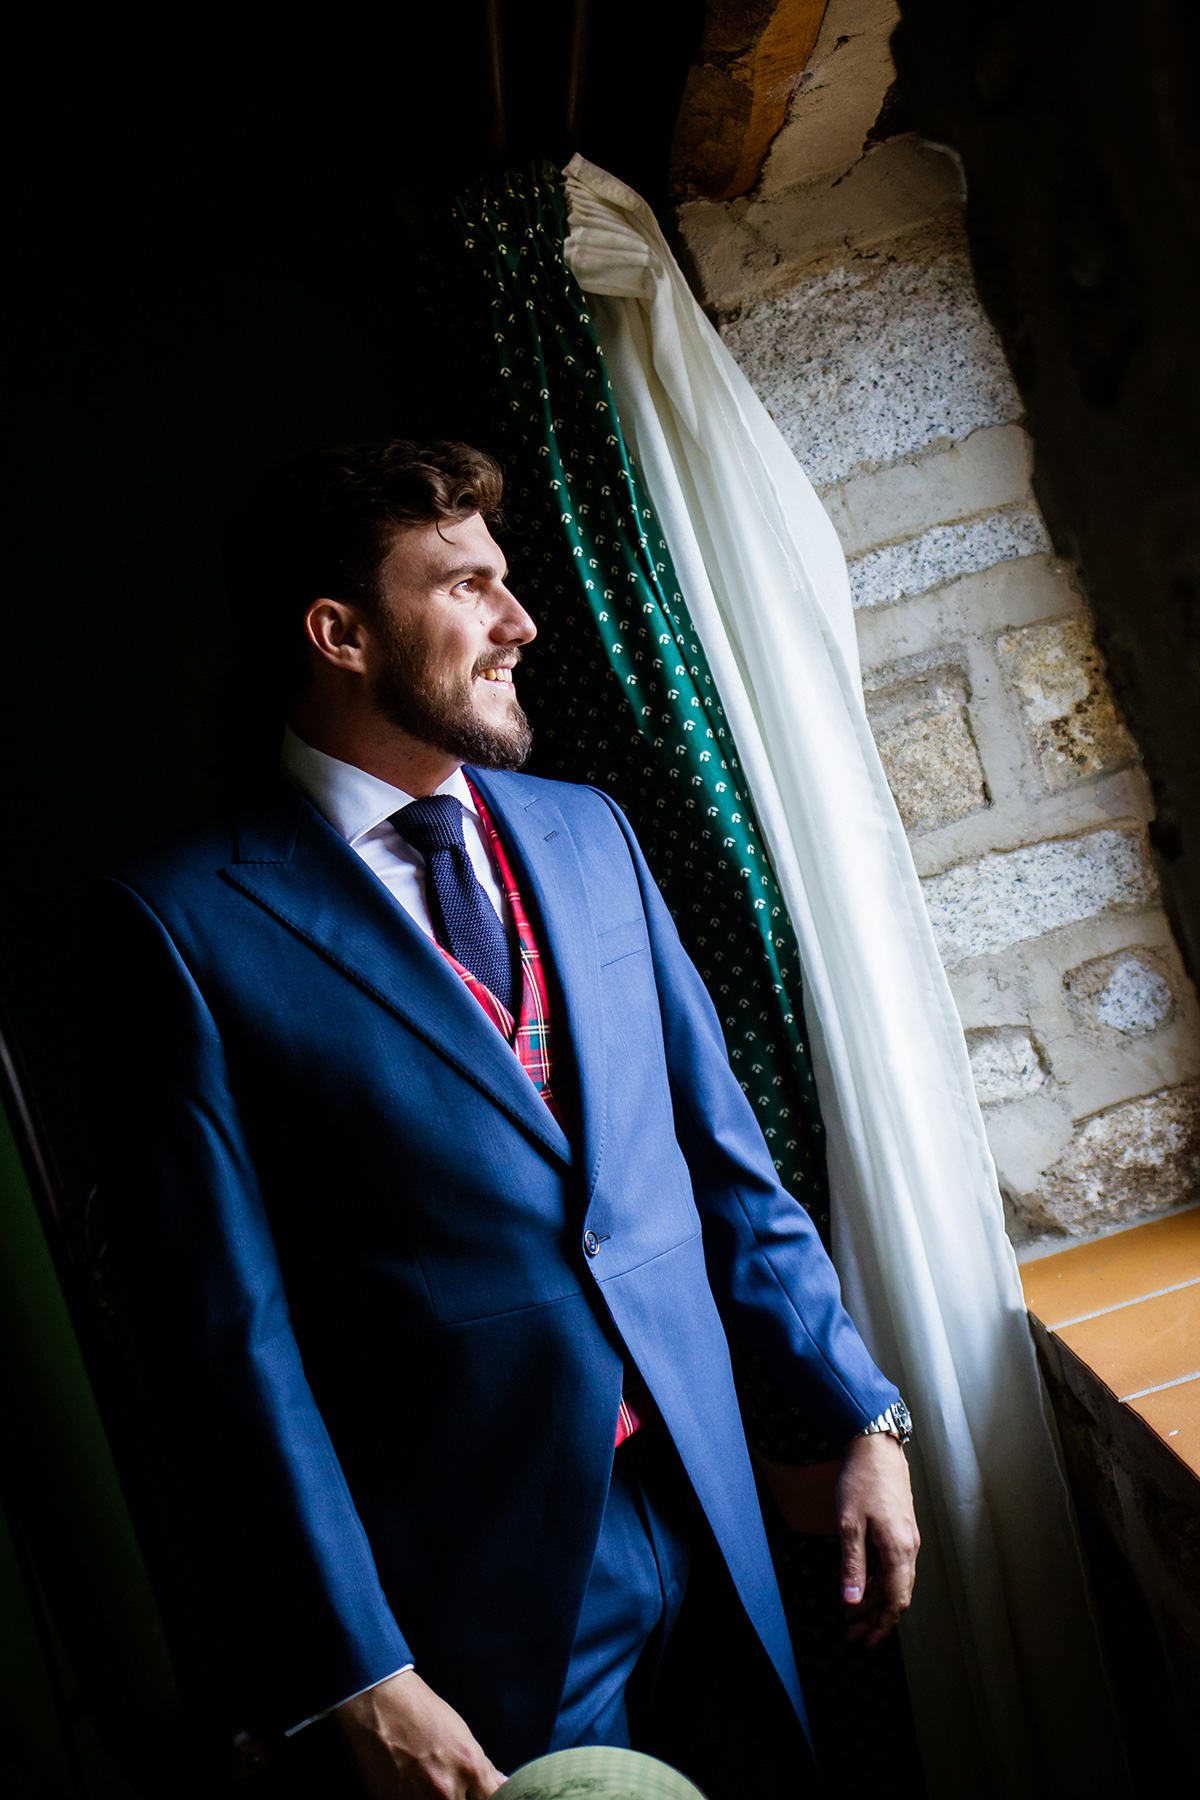 Wedding photographer Spain Madrid — Finca Aldea de Santillana - Fotografo de Boda - Buenavista and Co.